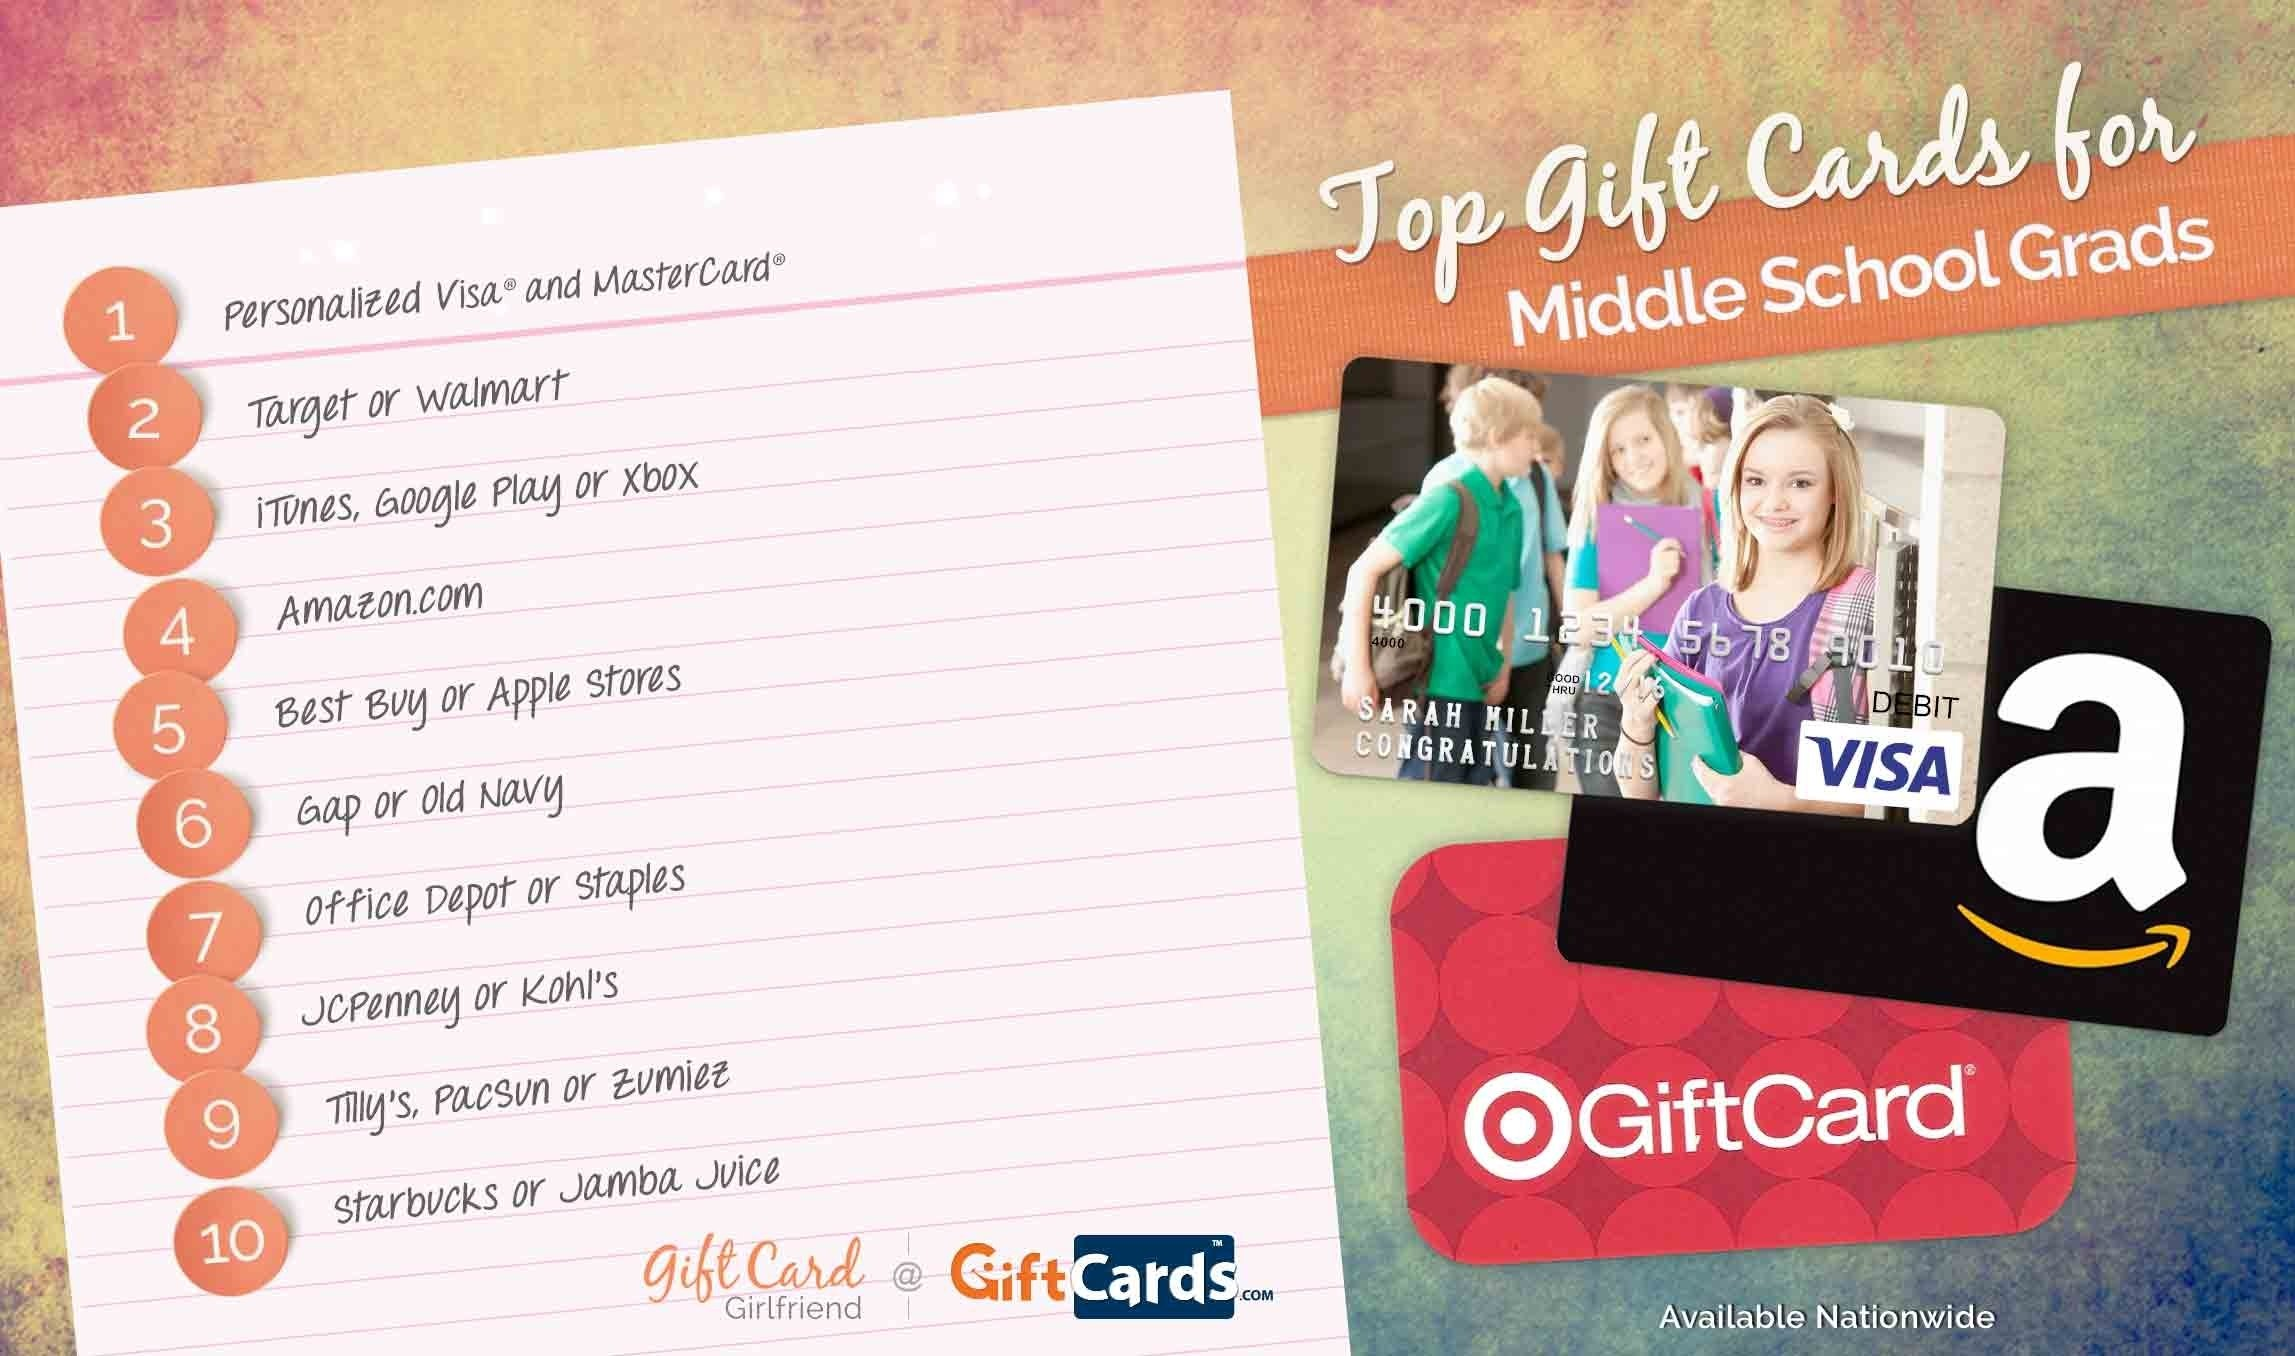 10 Amazing Gift Ideas For High School Graduate top 10 gift cards for middle school graduates gcg 1